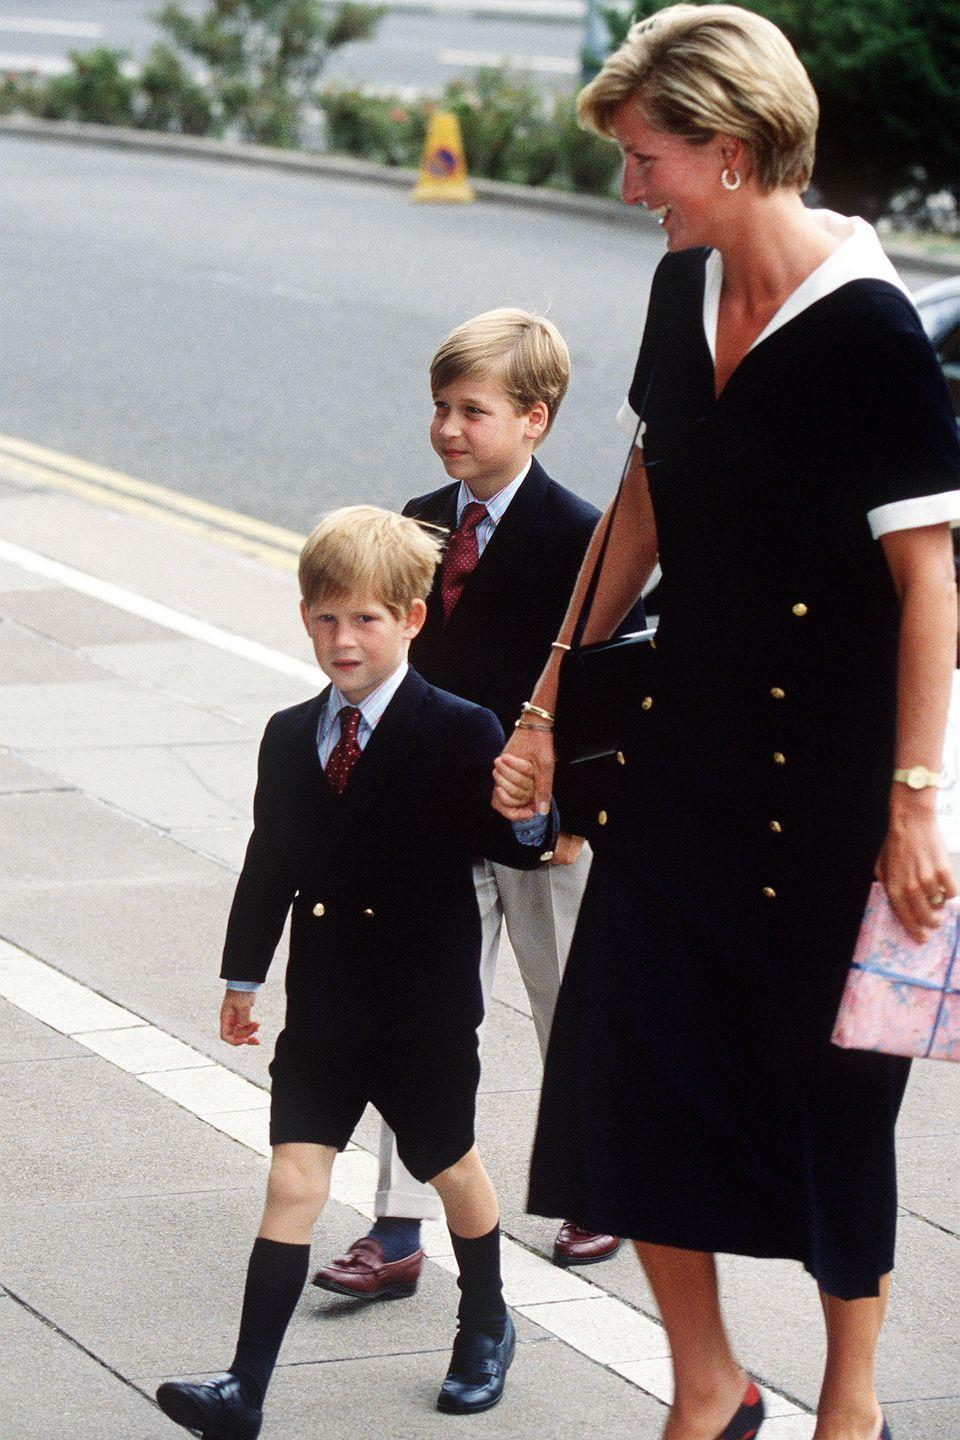 <p>Dressed in matching black looks, the royal family arrives at Nottingham Medical Centre to visit the Prince of Wales after his operation.</p>